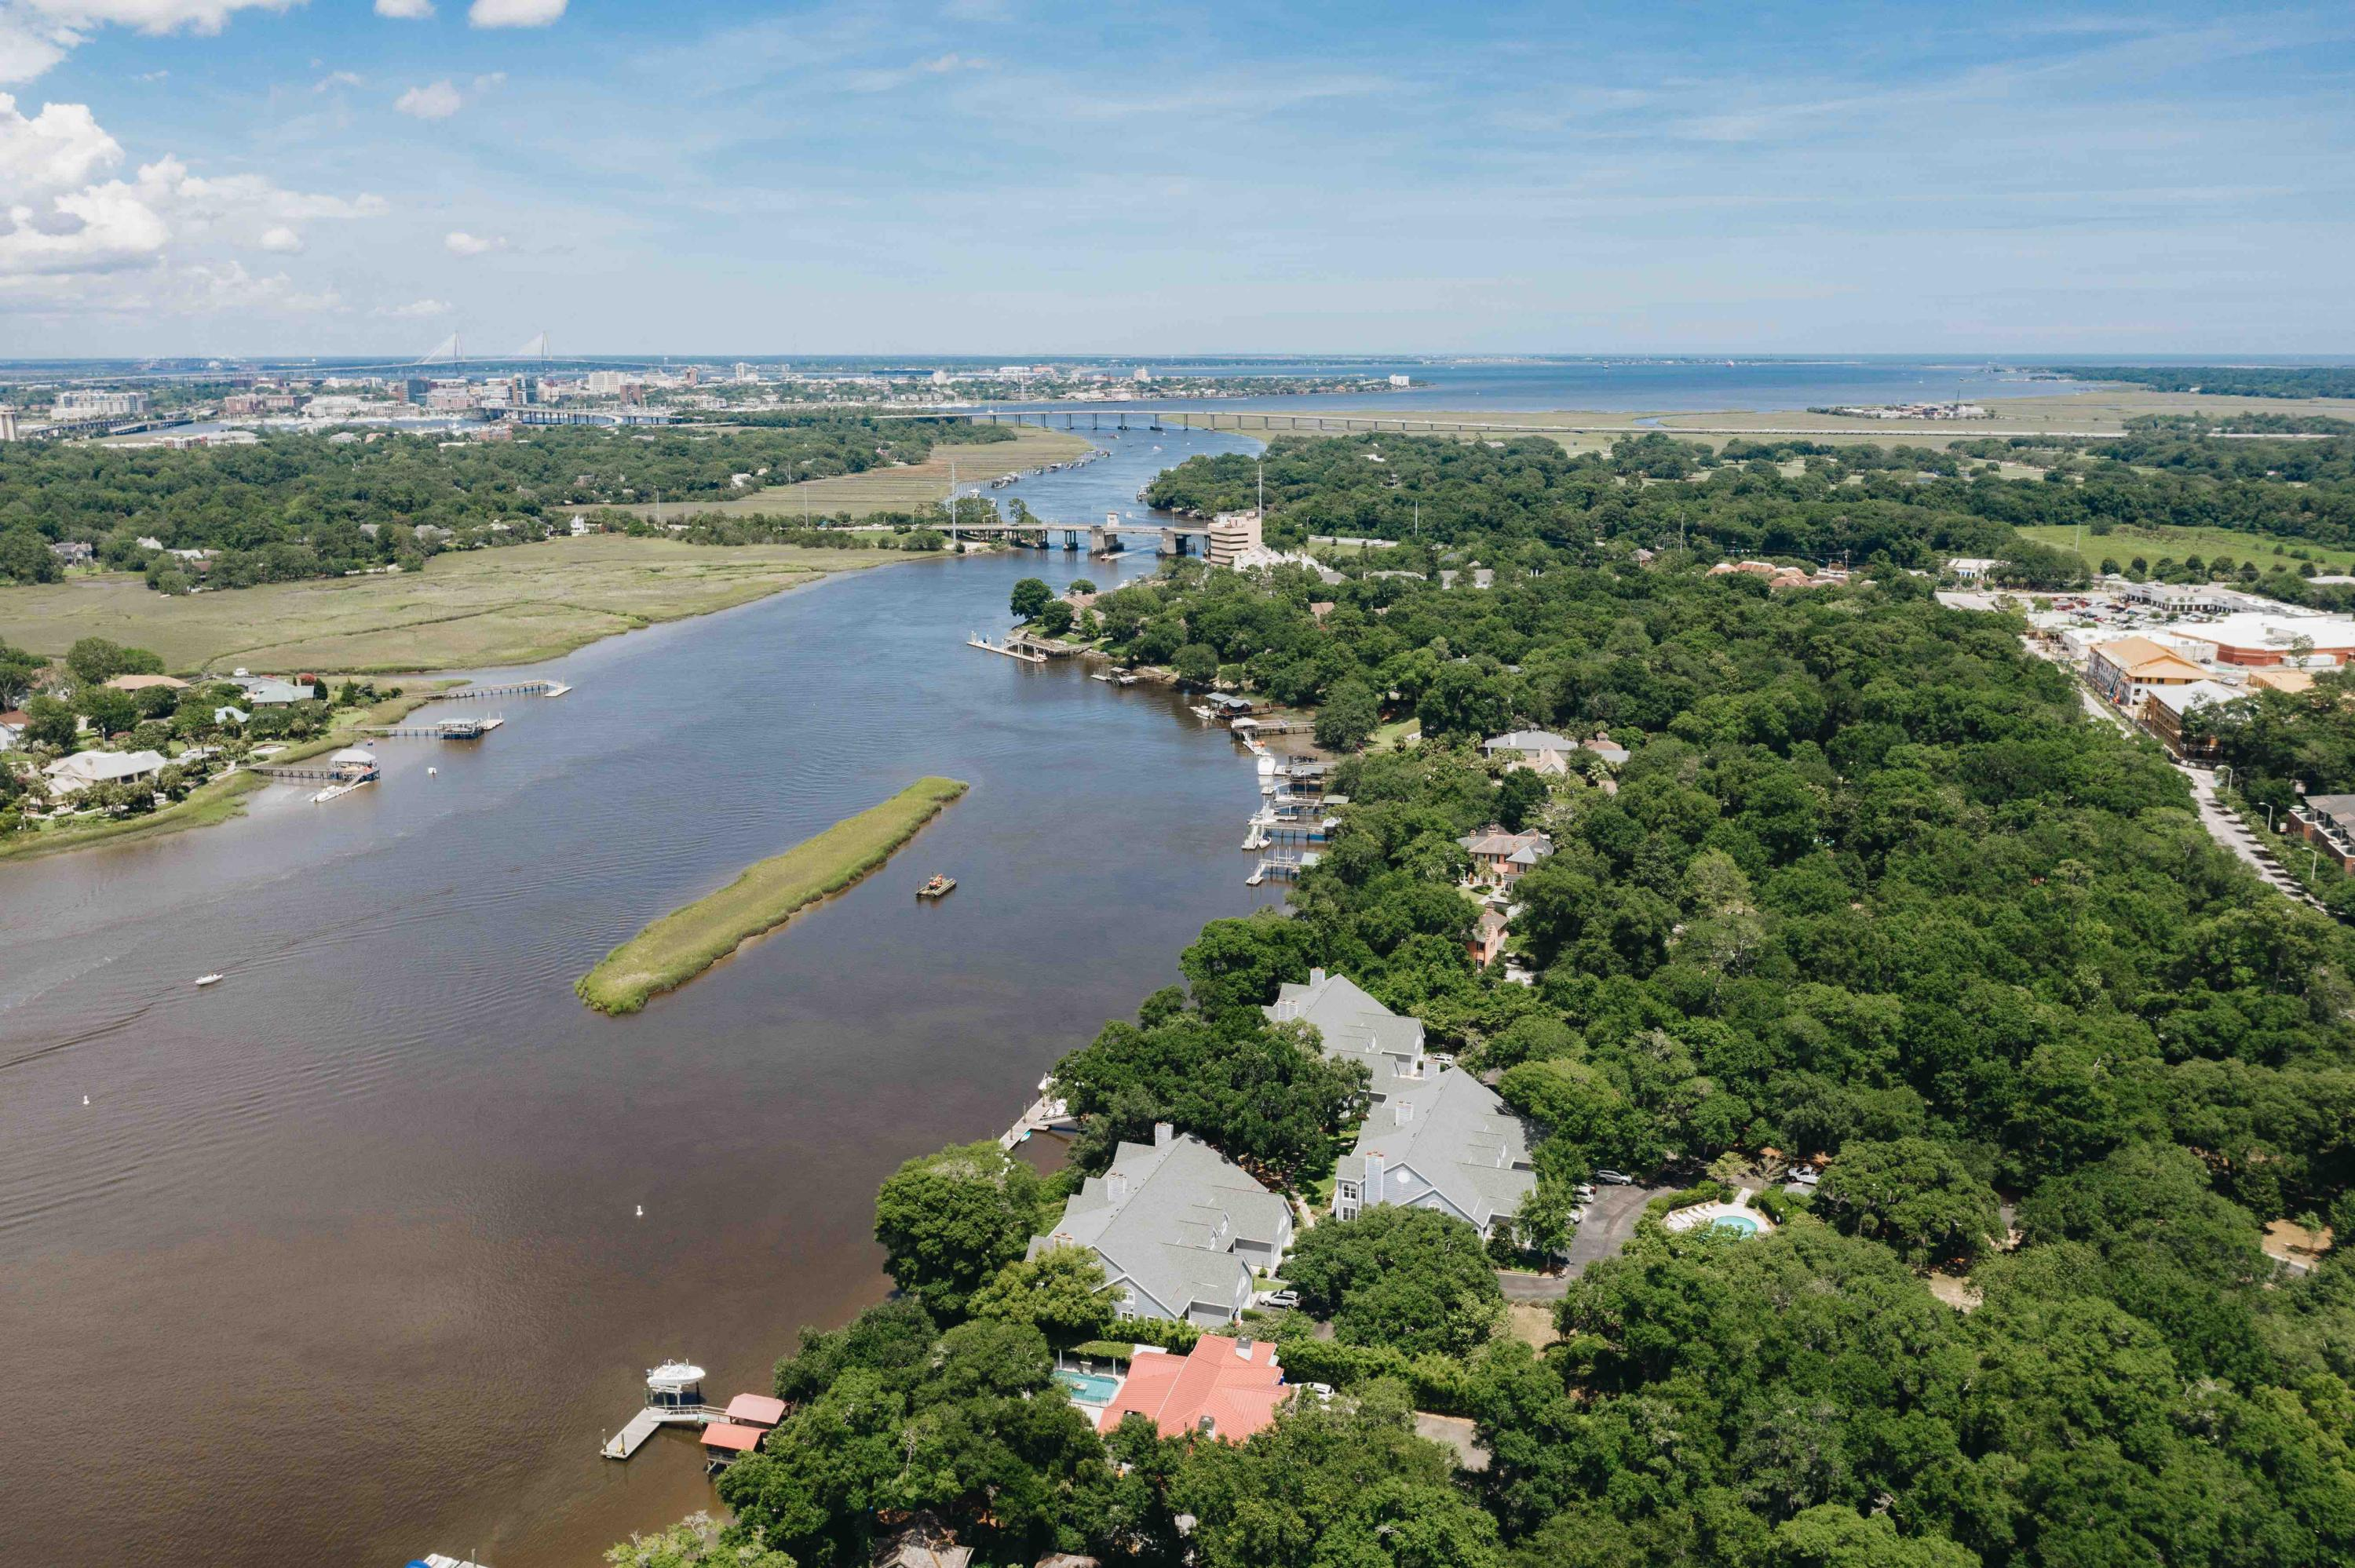 Waterfront Plantation Homes For Sale - 107 Waterfront Plantation, Charleston, SC - 46